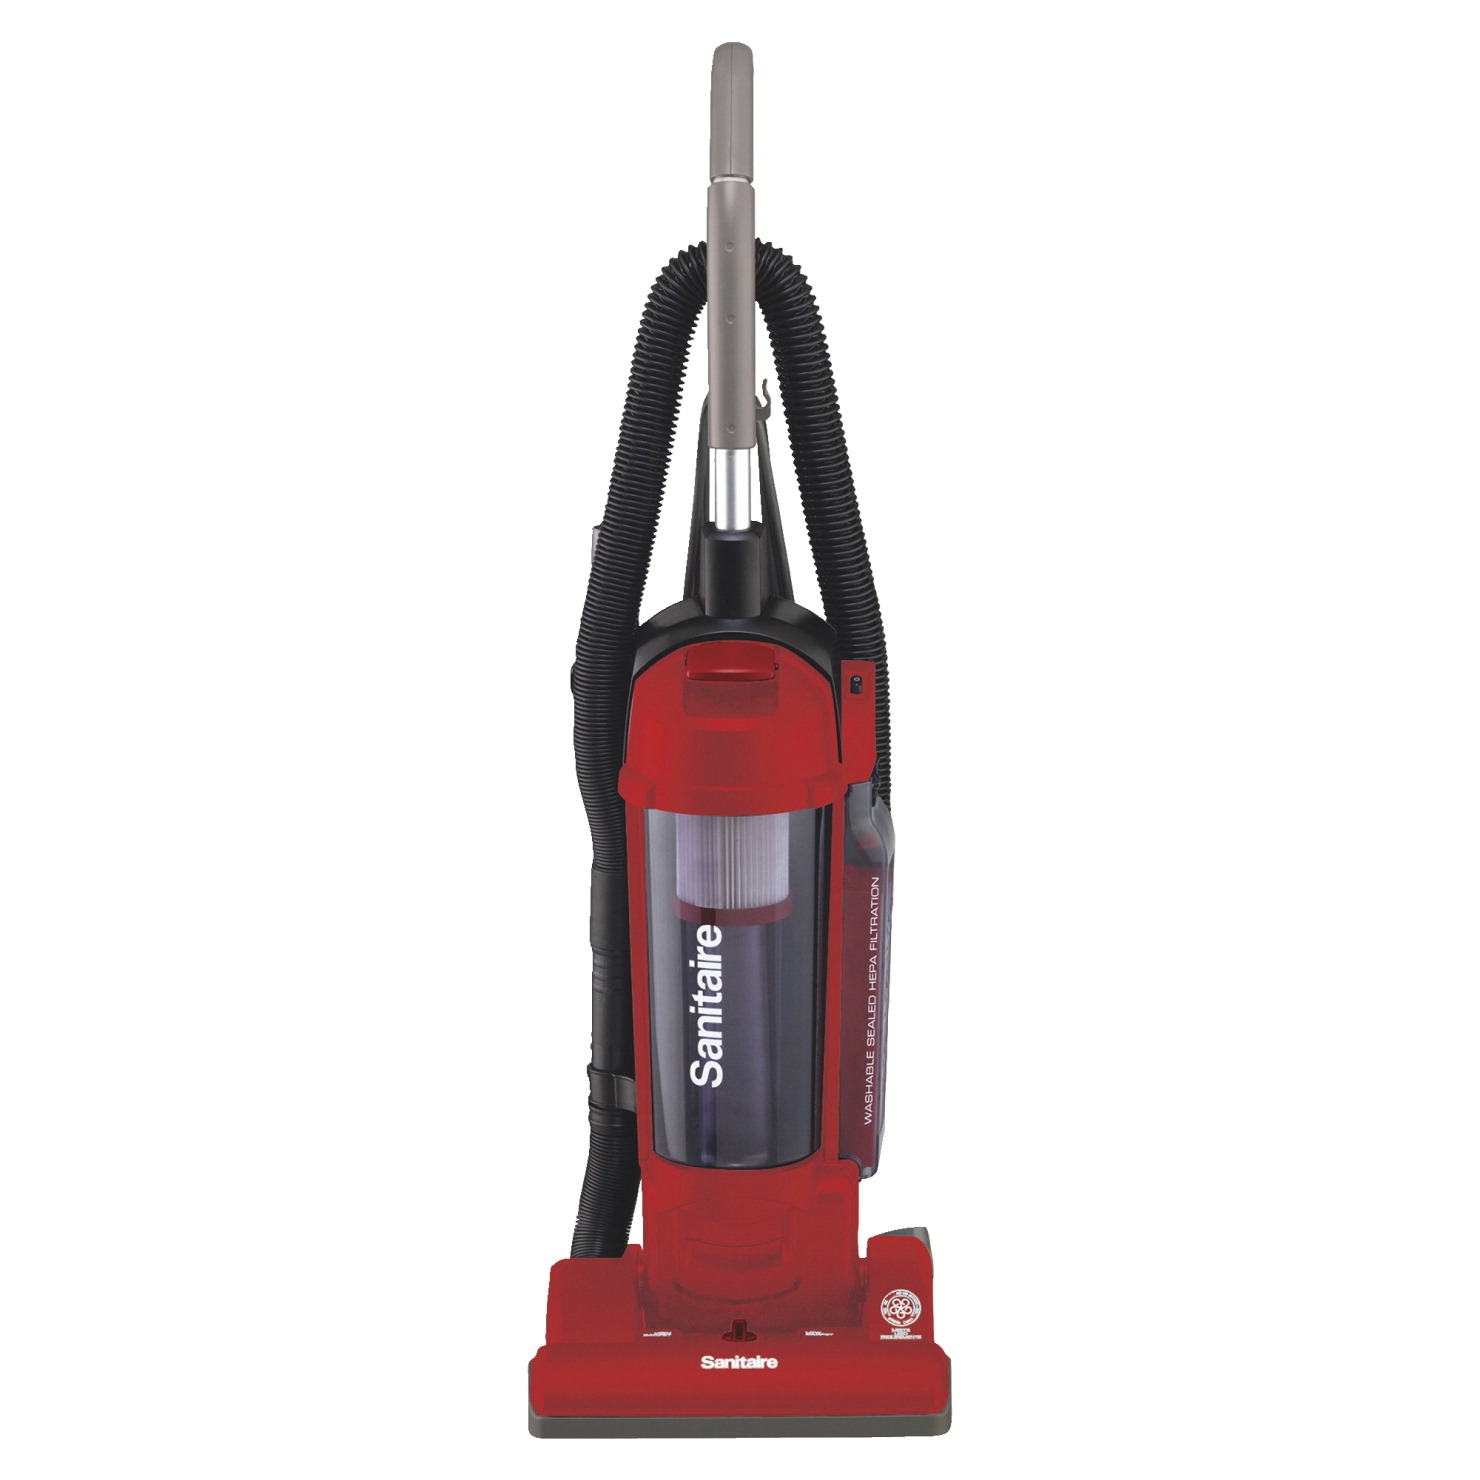 Electrolux Sanitaire Hepa Upright Vacuum; 3.5 Qt; 42-1/2 X 13 X 12-1/2 In; Red - 1534999 - Facilities Management Facility Supplies Machines Appliances Kitchen Appliances 1534999